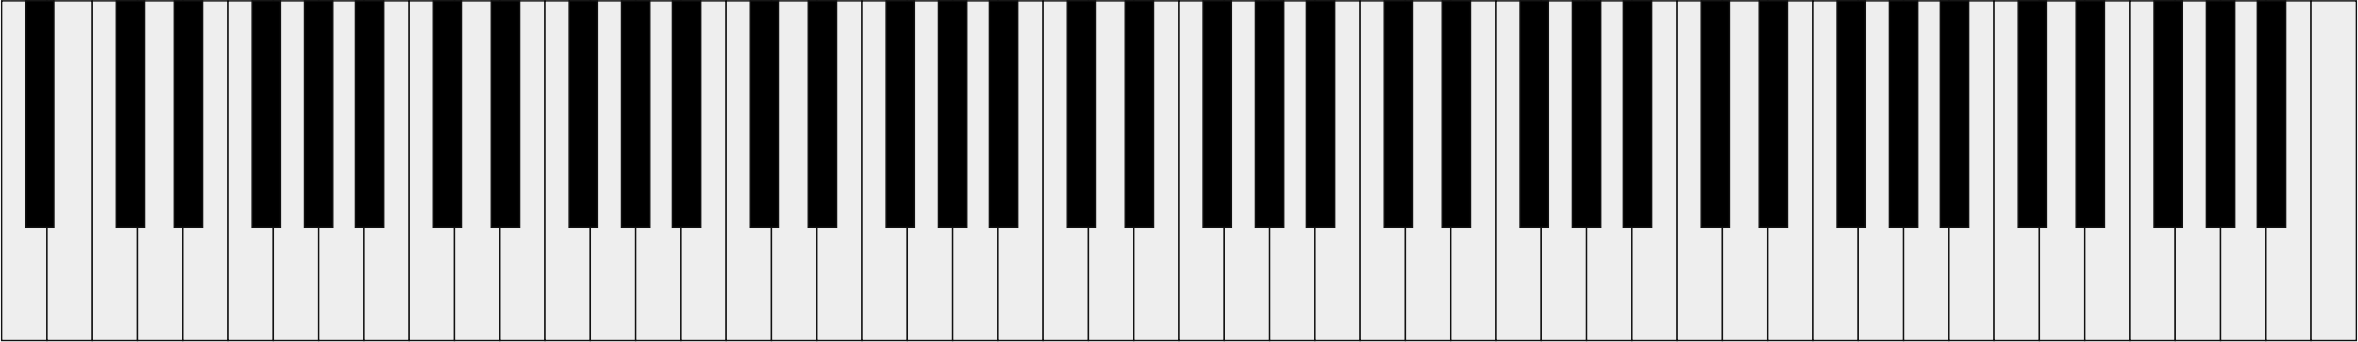 Piano clipart full keyboard. The of a standard